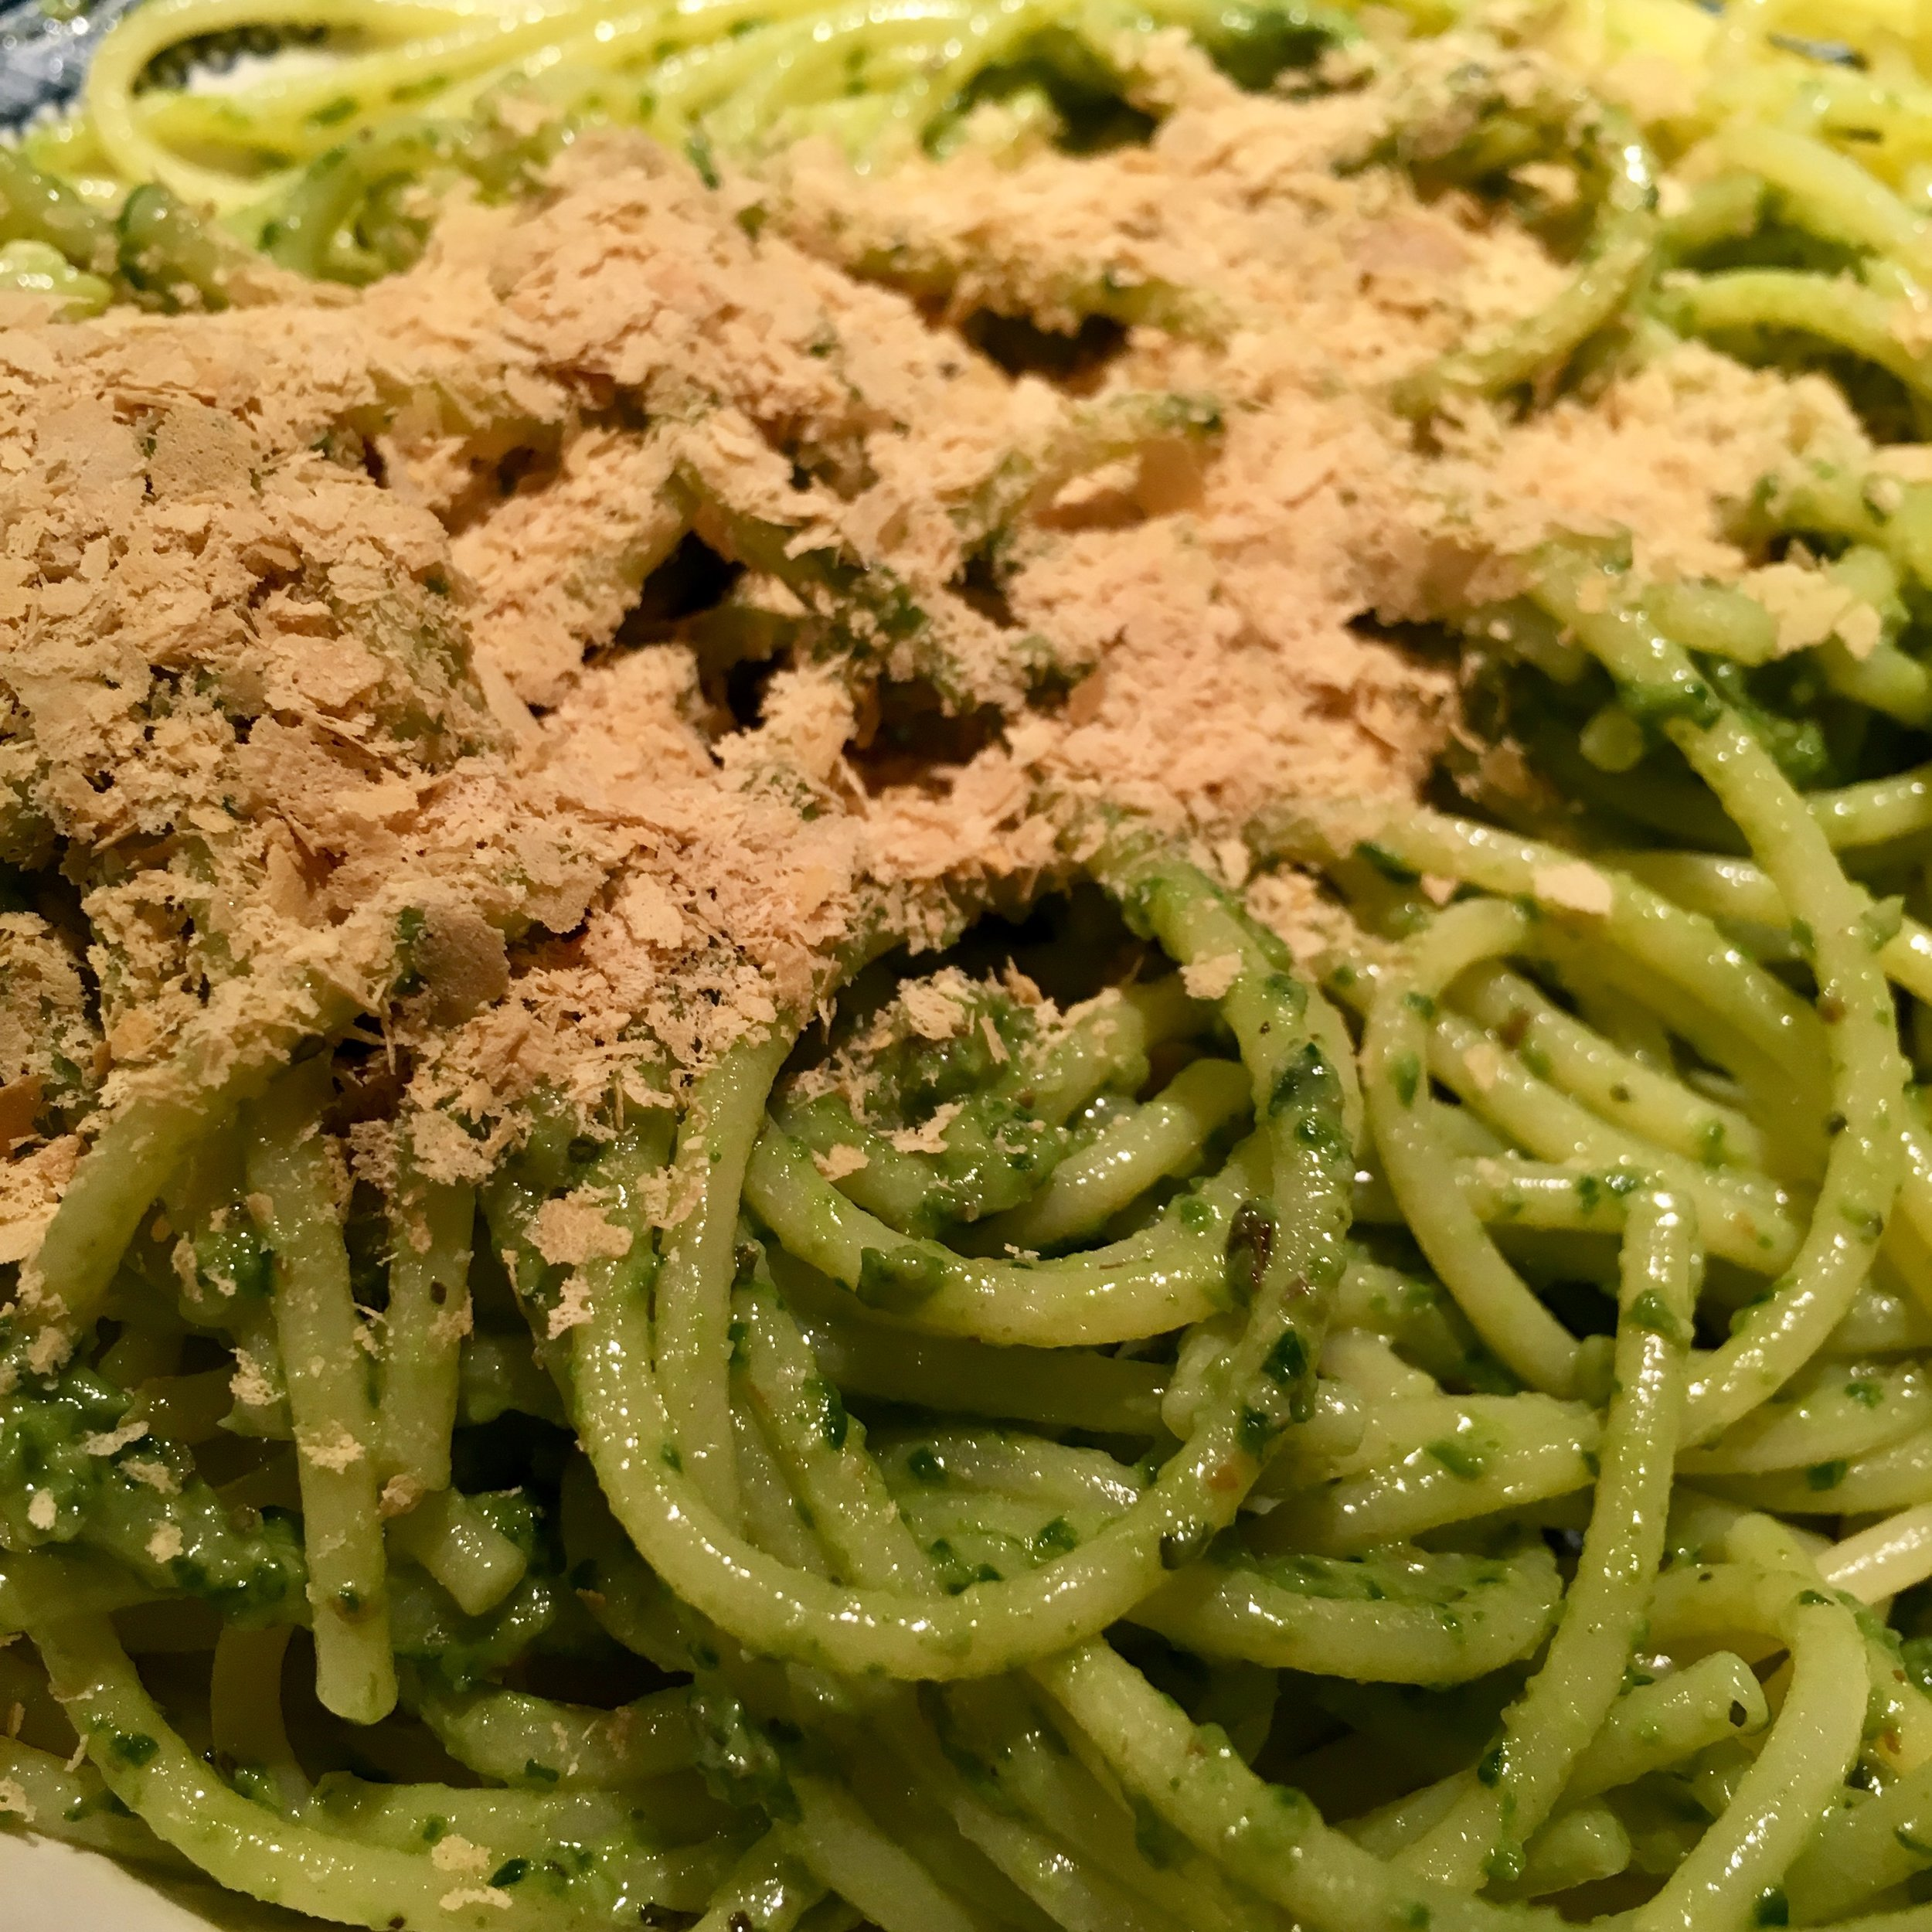 Pre-race dinner: Gluten-free pasta with pesto and nutritional yeast